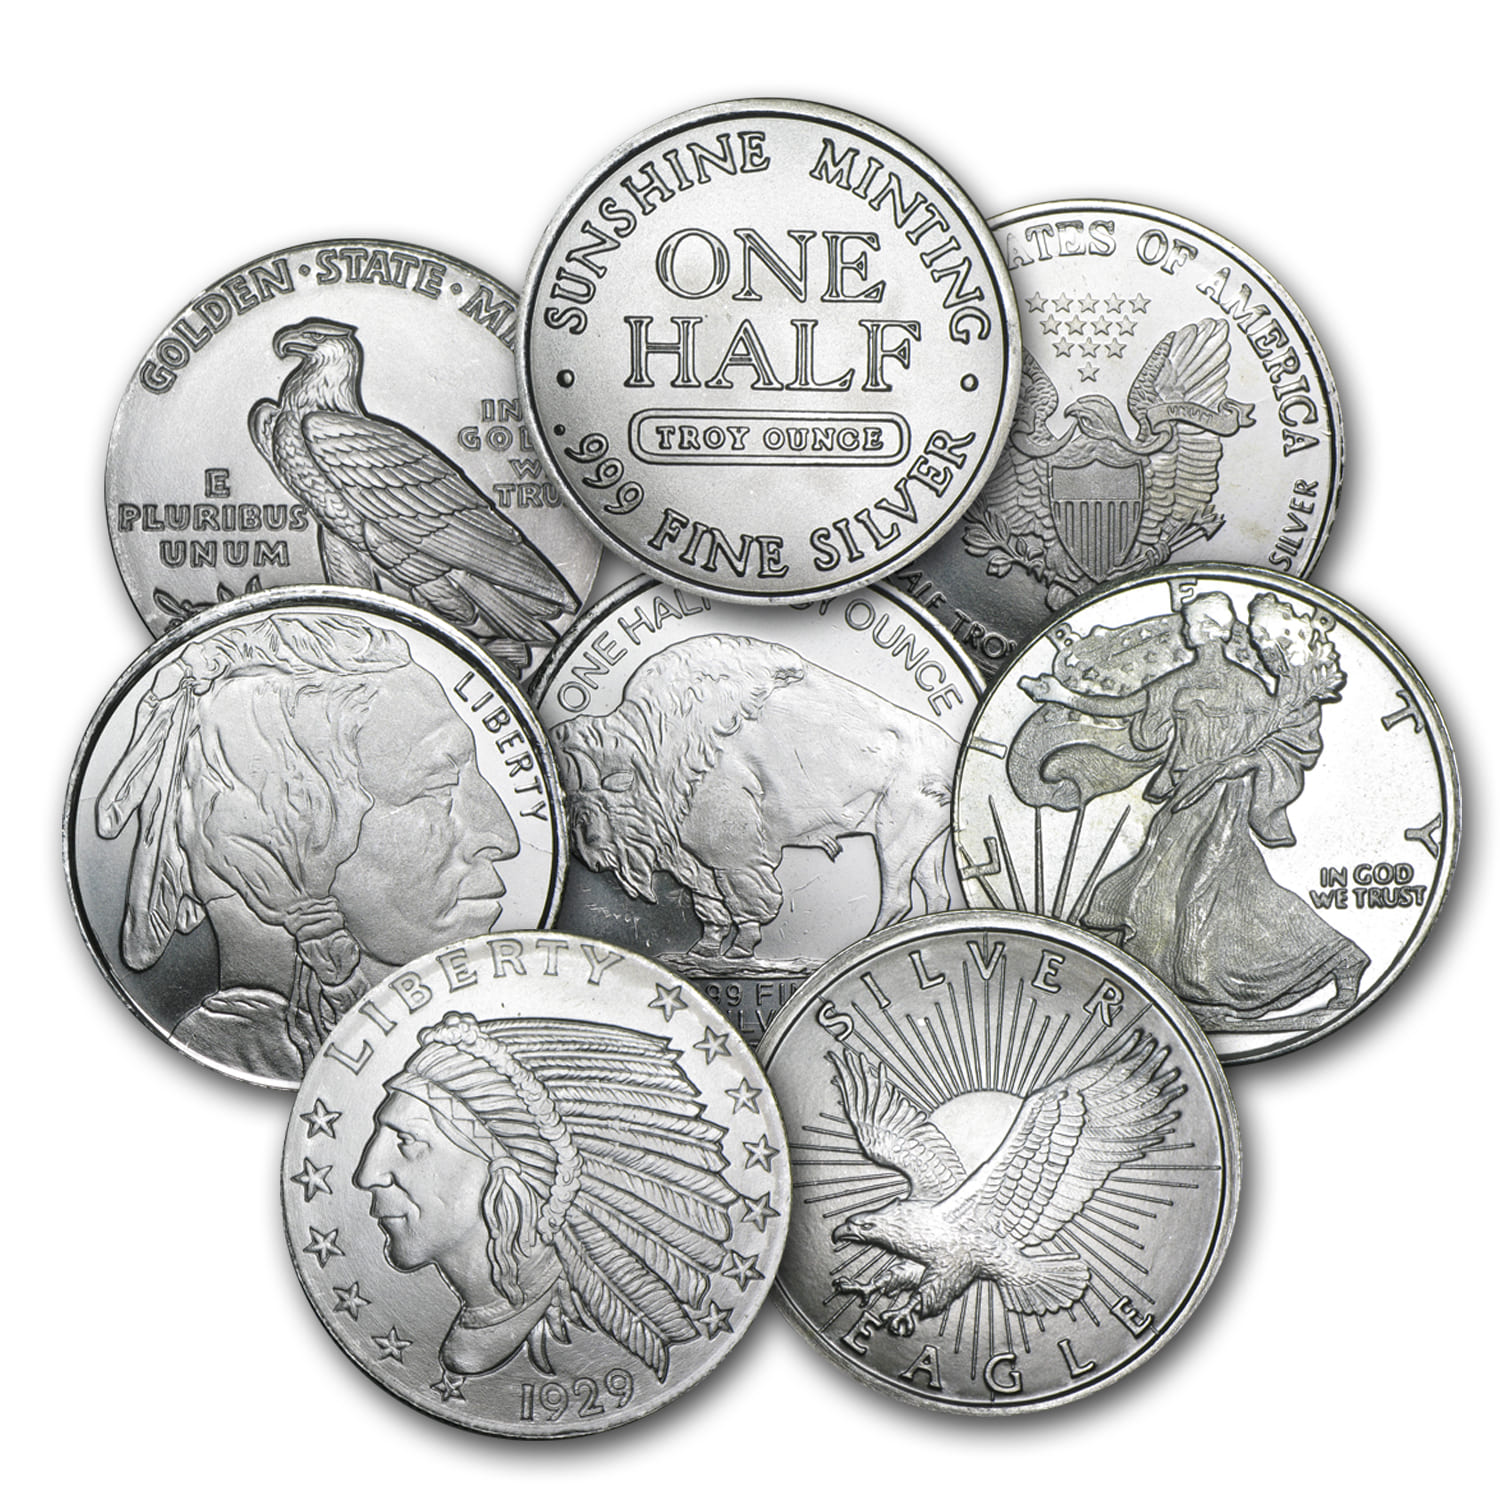 1/2 oz Silver Rounds - Secondary Market